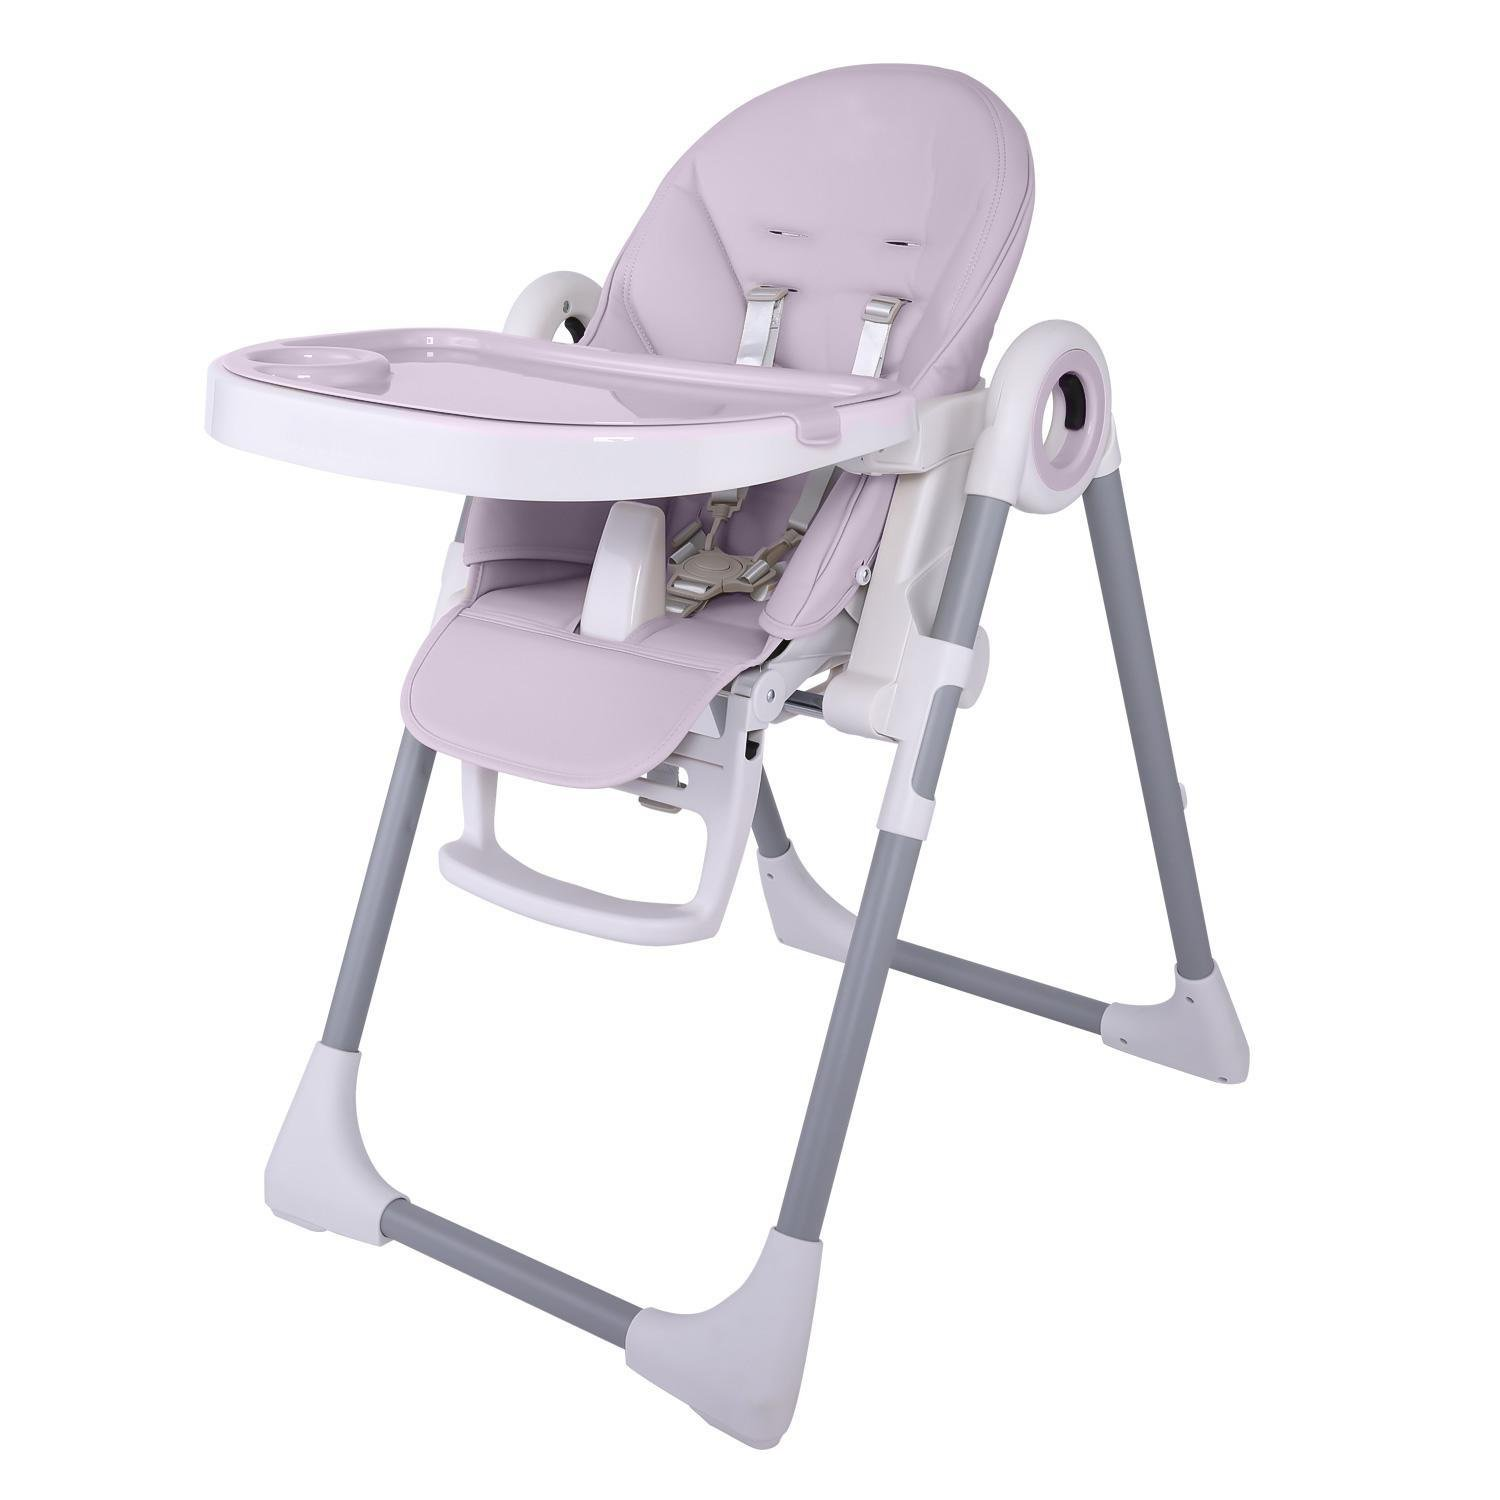 Dorani Foldable Portable Telescopic Baby High Chairs with Tray, Solid, Gray (US Stock)